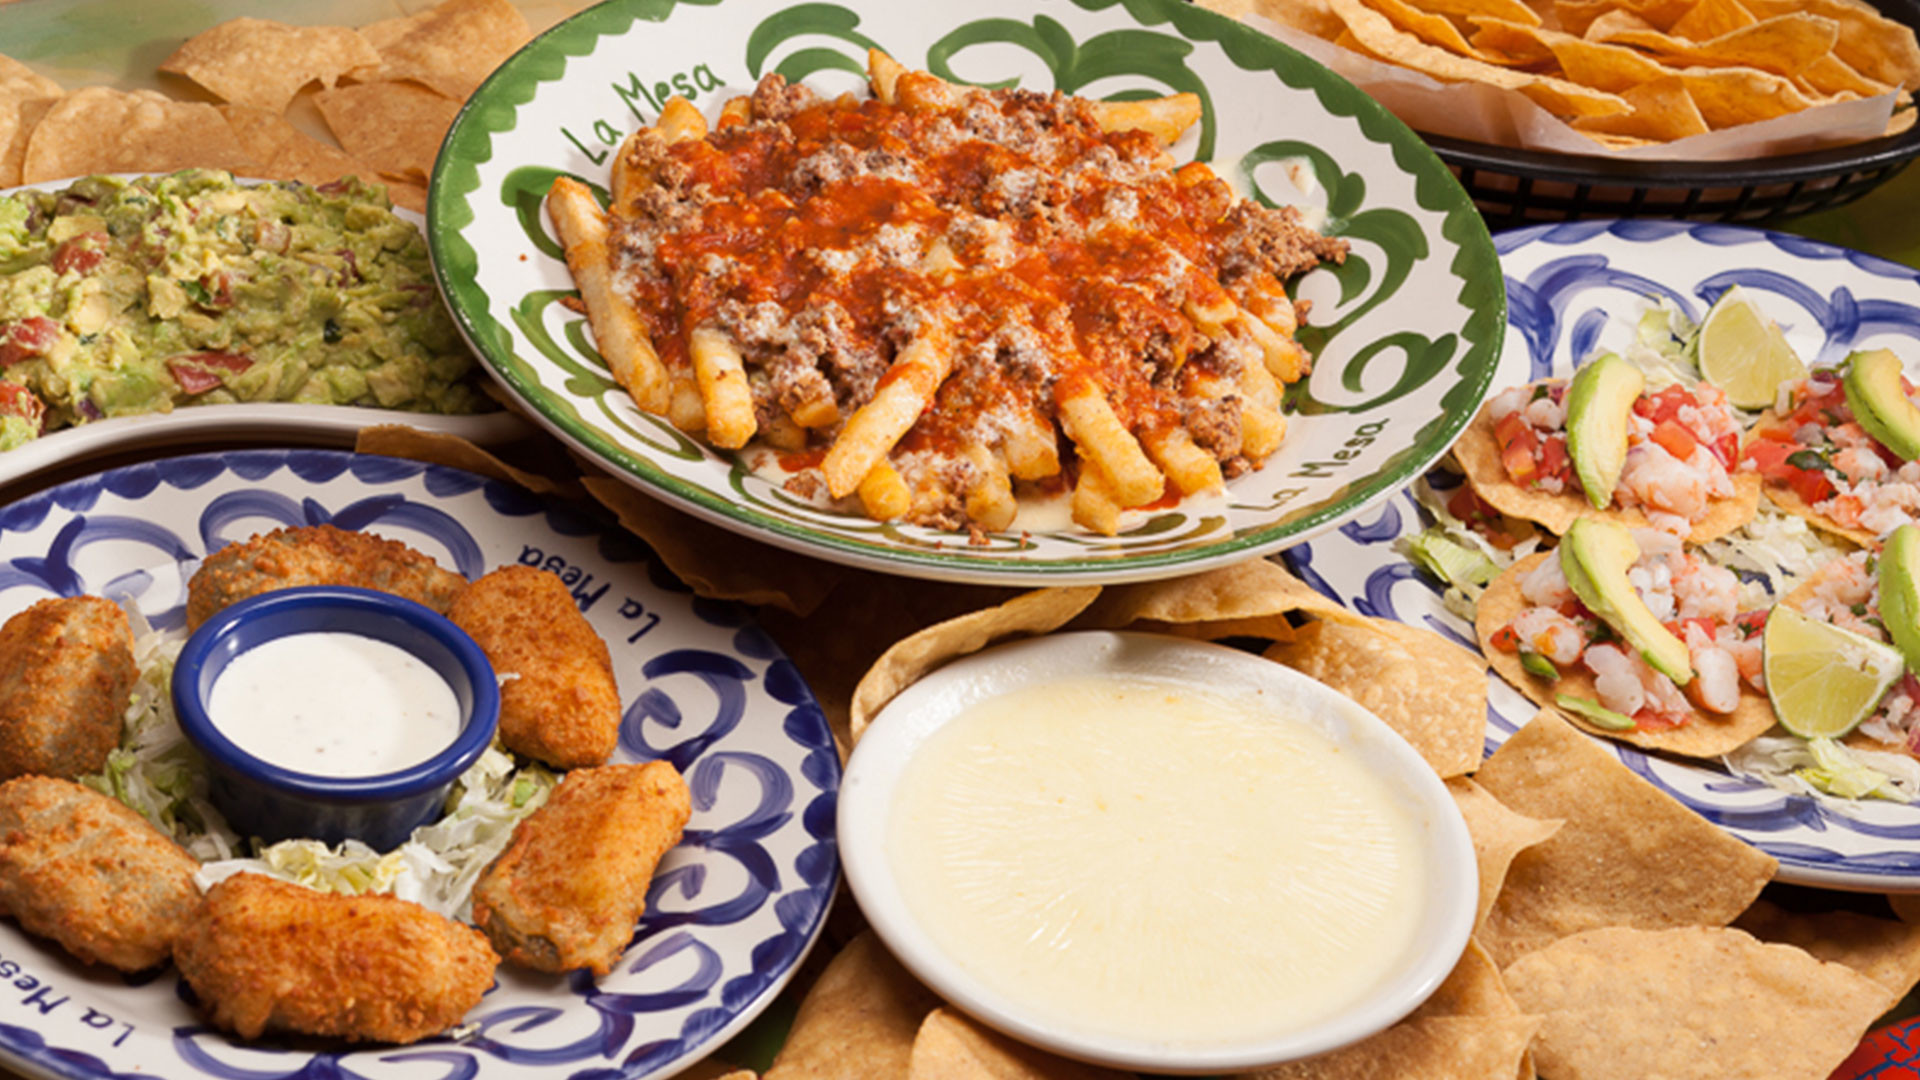 Appetizers from La Mesa Mexican Restaurant